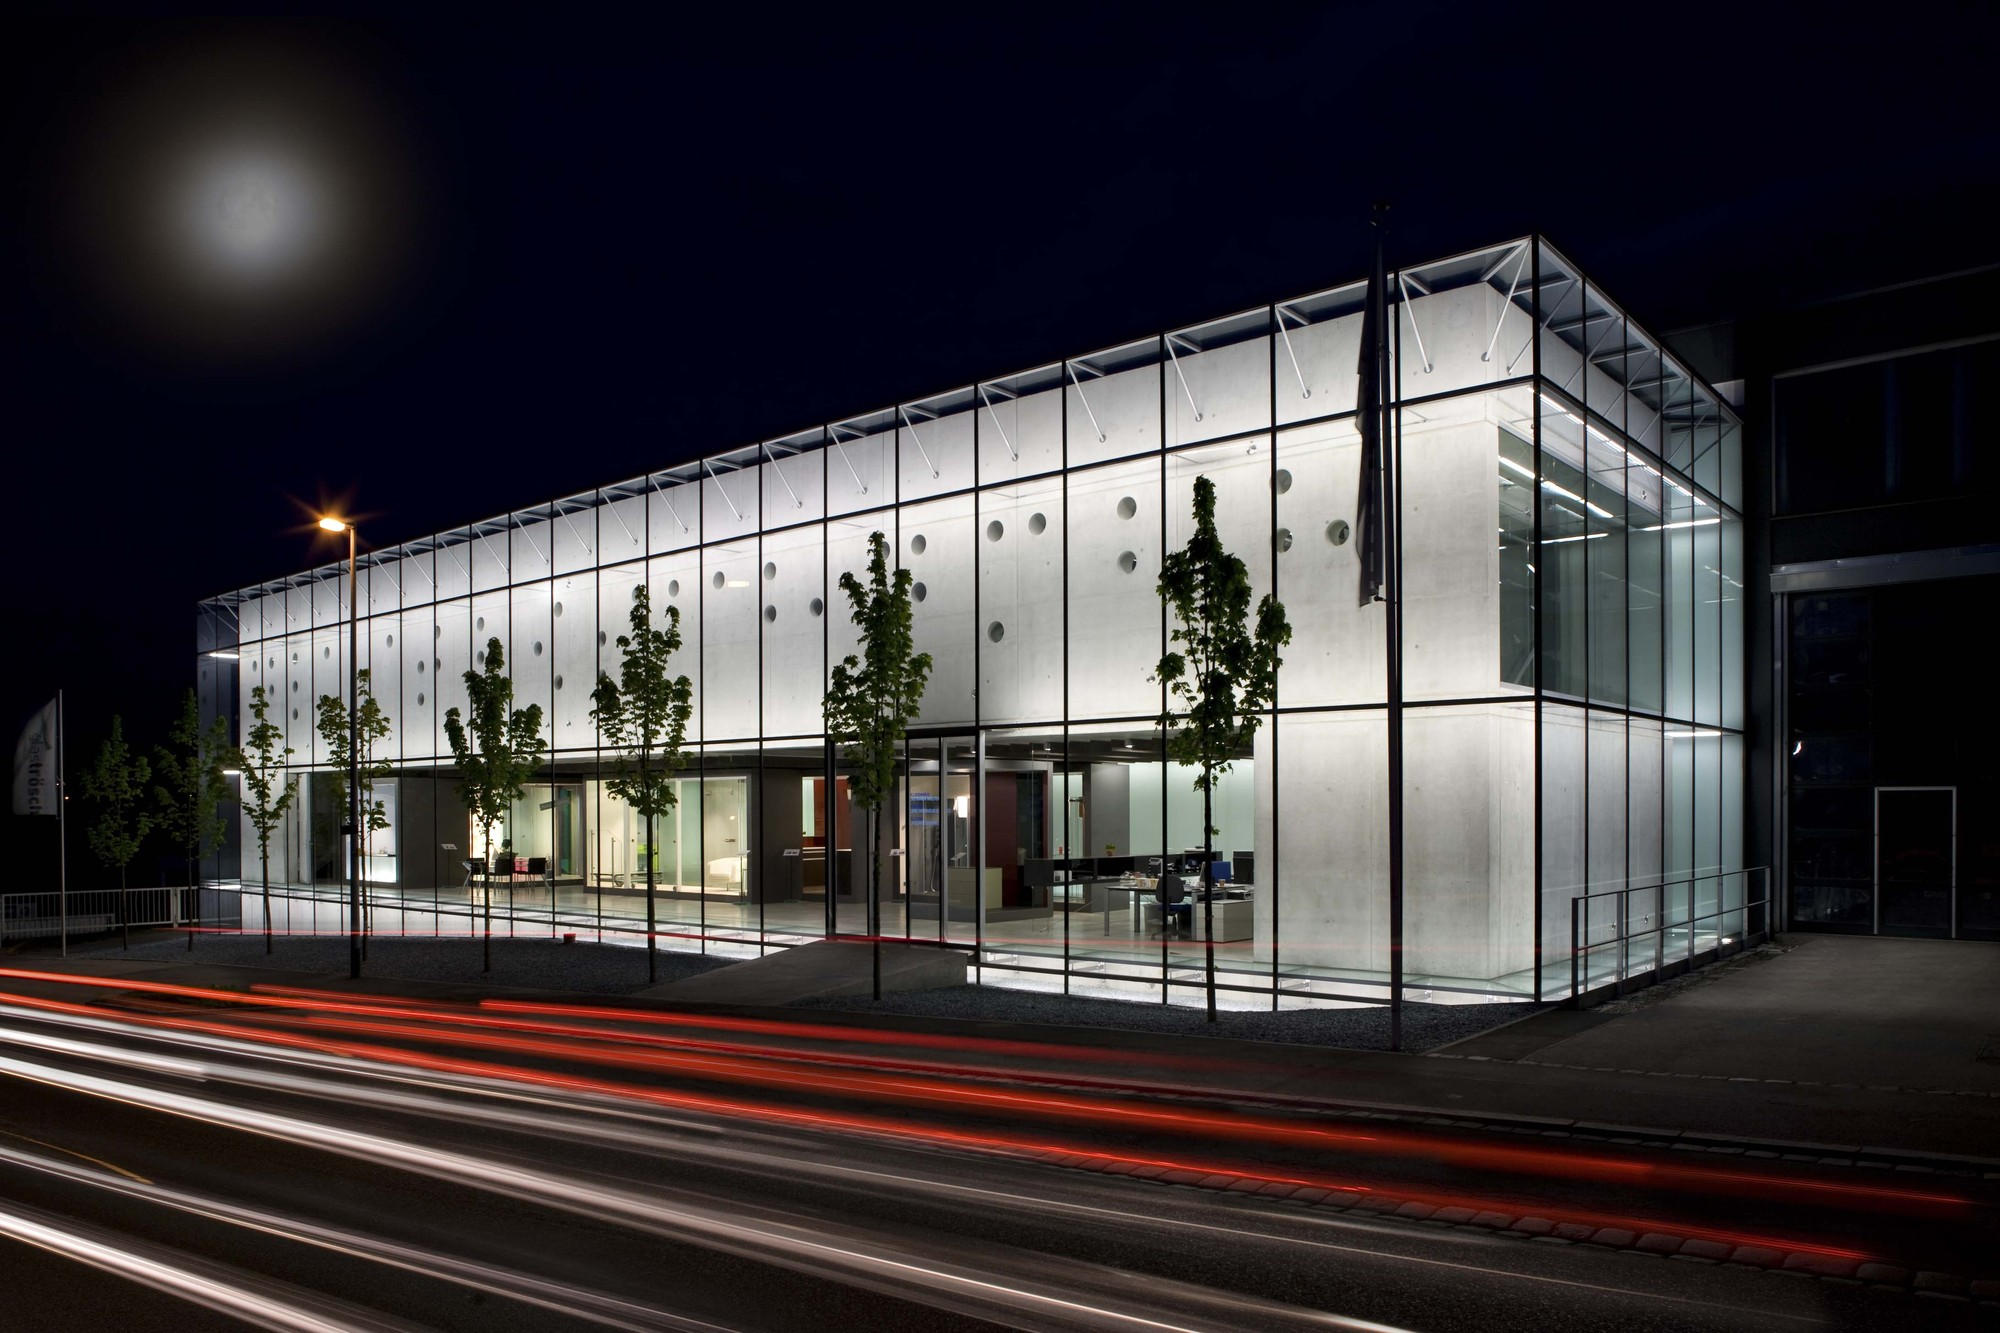 Competence Centre Glastroesch / becker architekten, Courtesy of becker architekten